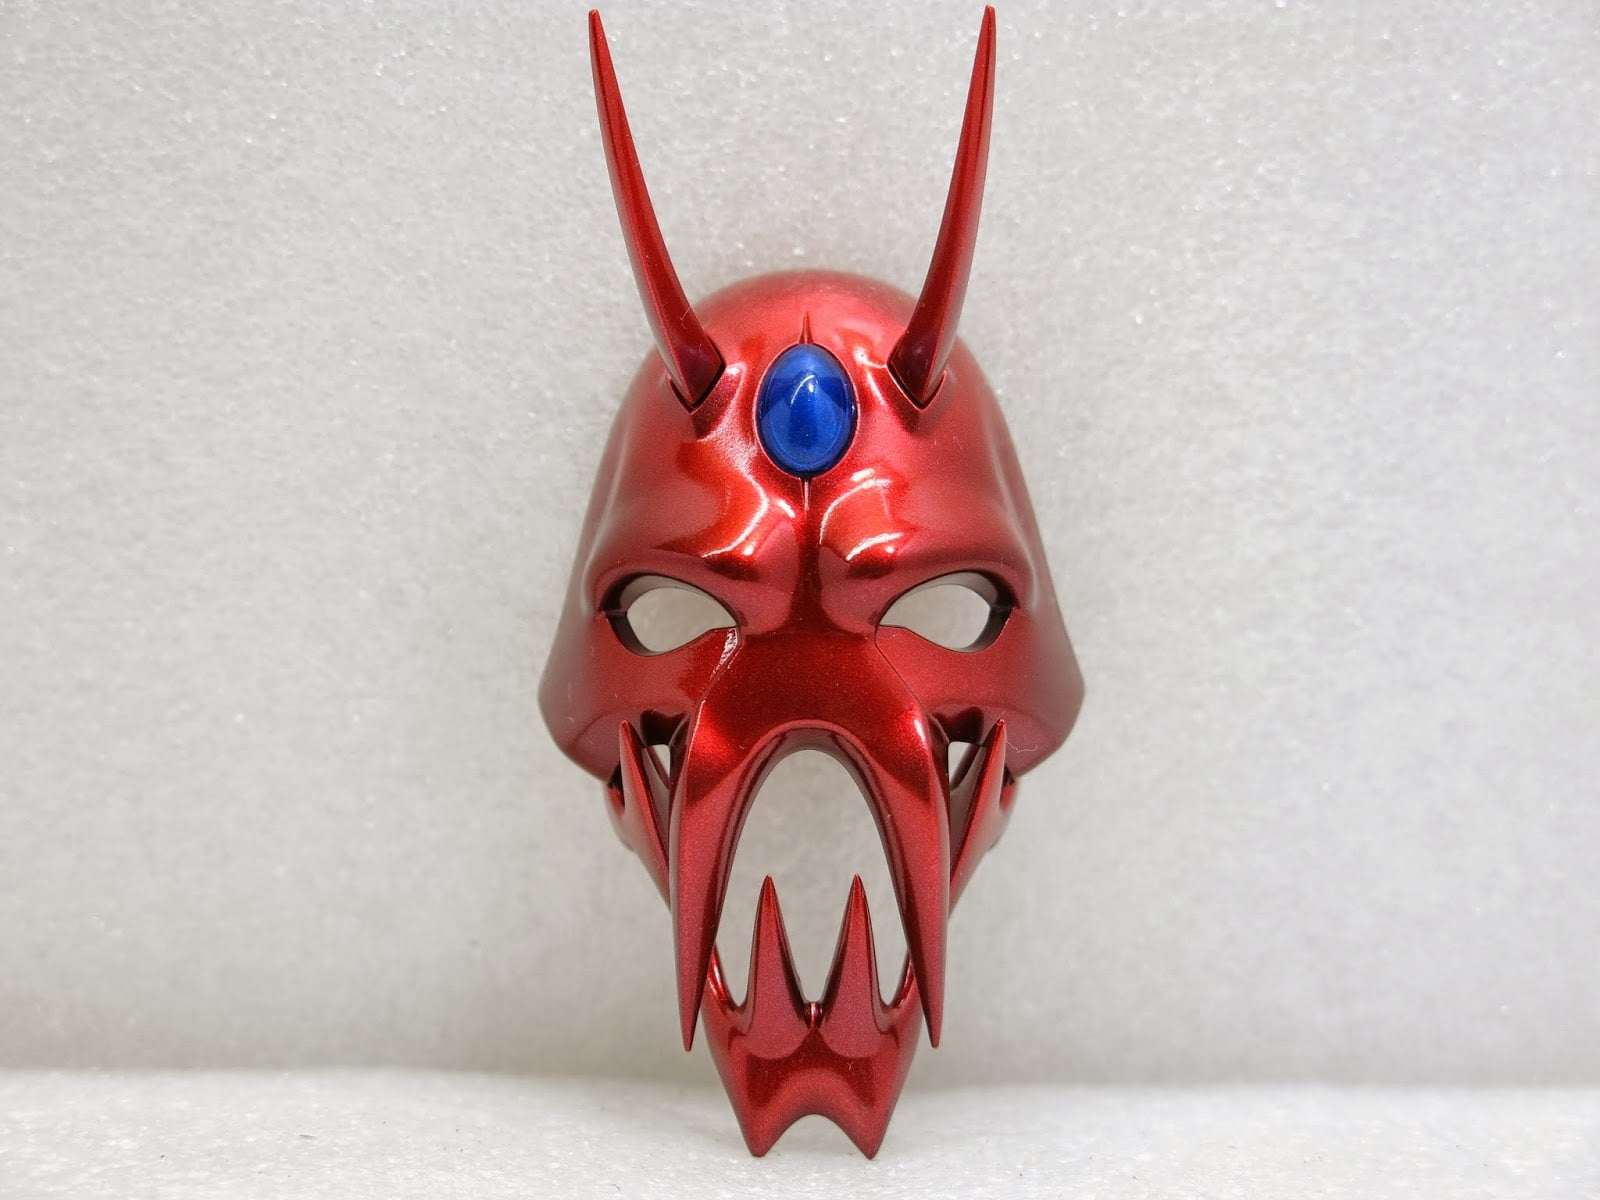 Toy Model Ghost Mask 03 約瑟夫模型:鬼面 SRG-S034~PERSON-LICHKEIT 超級機器人大戰 OG